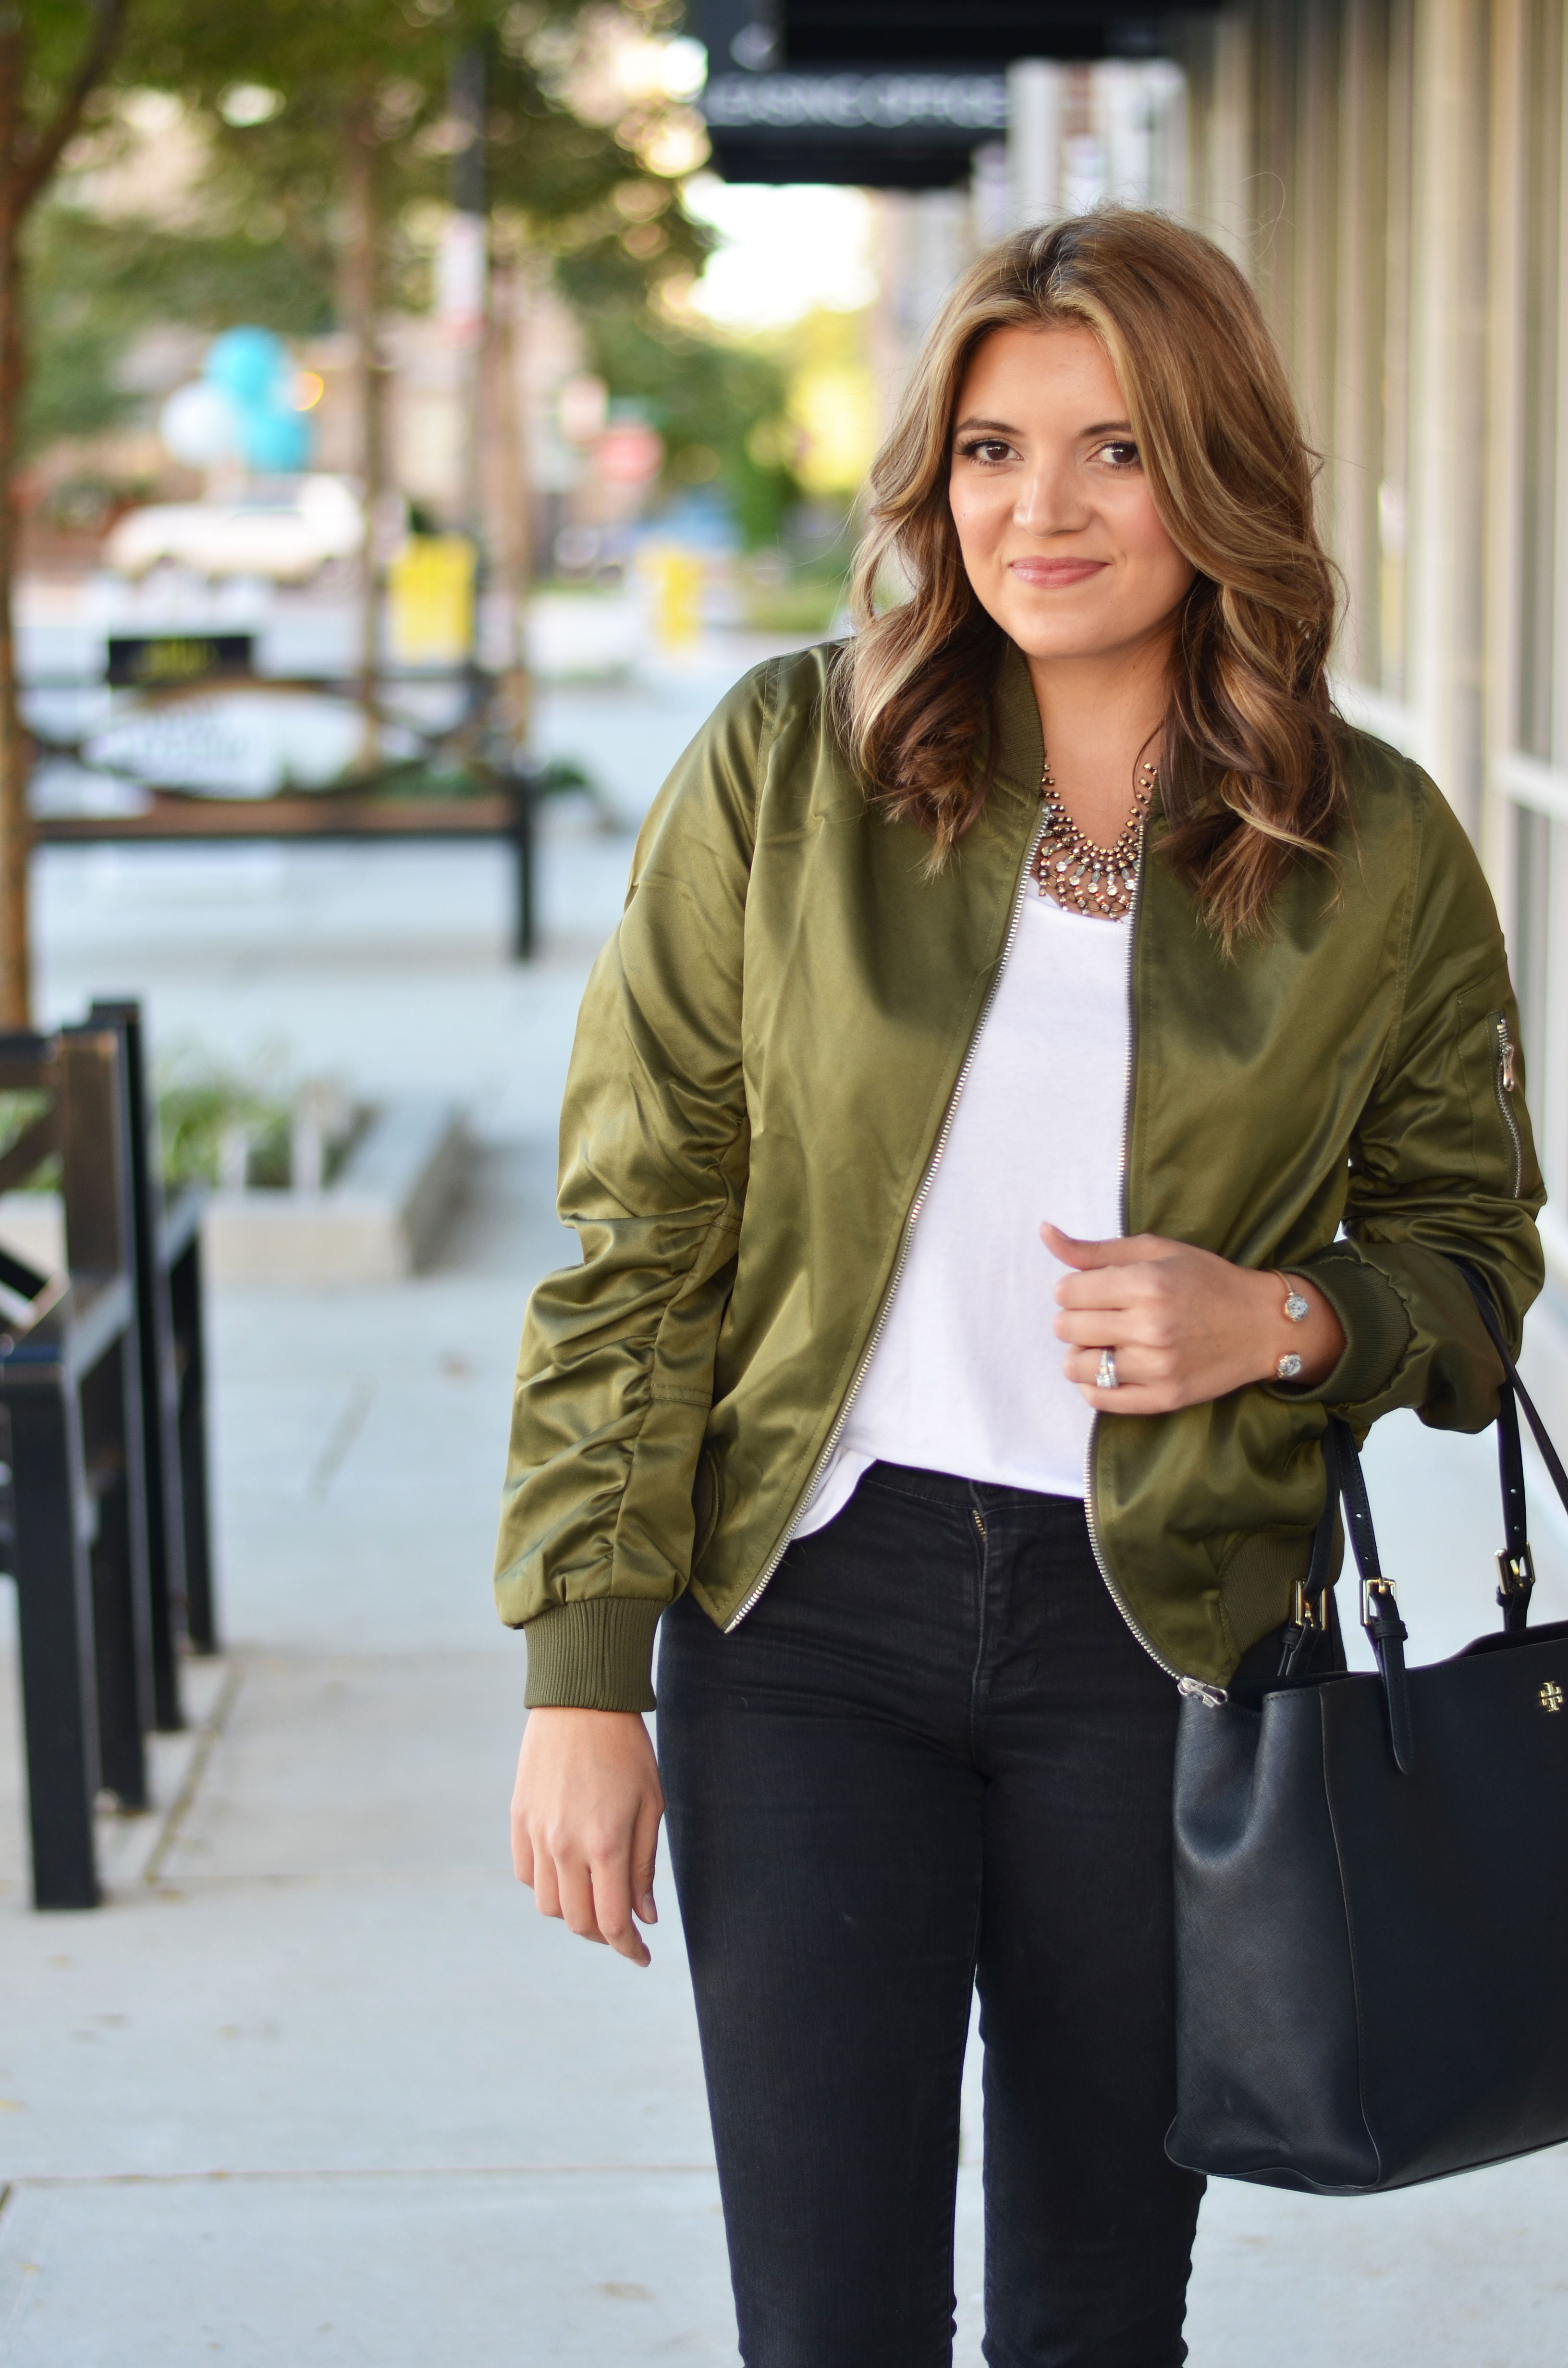 olive satin bomber jacket outfit idea - satin bomber jacket with a white tee and black jeans | www.bylaurenm.com